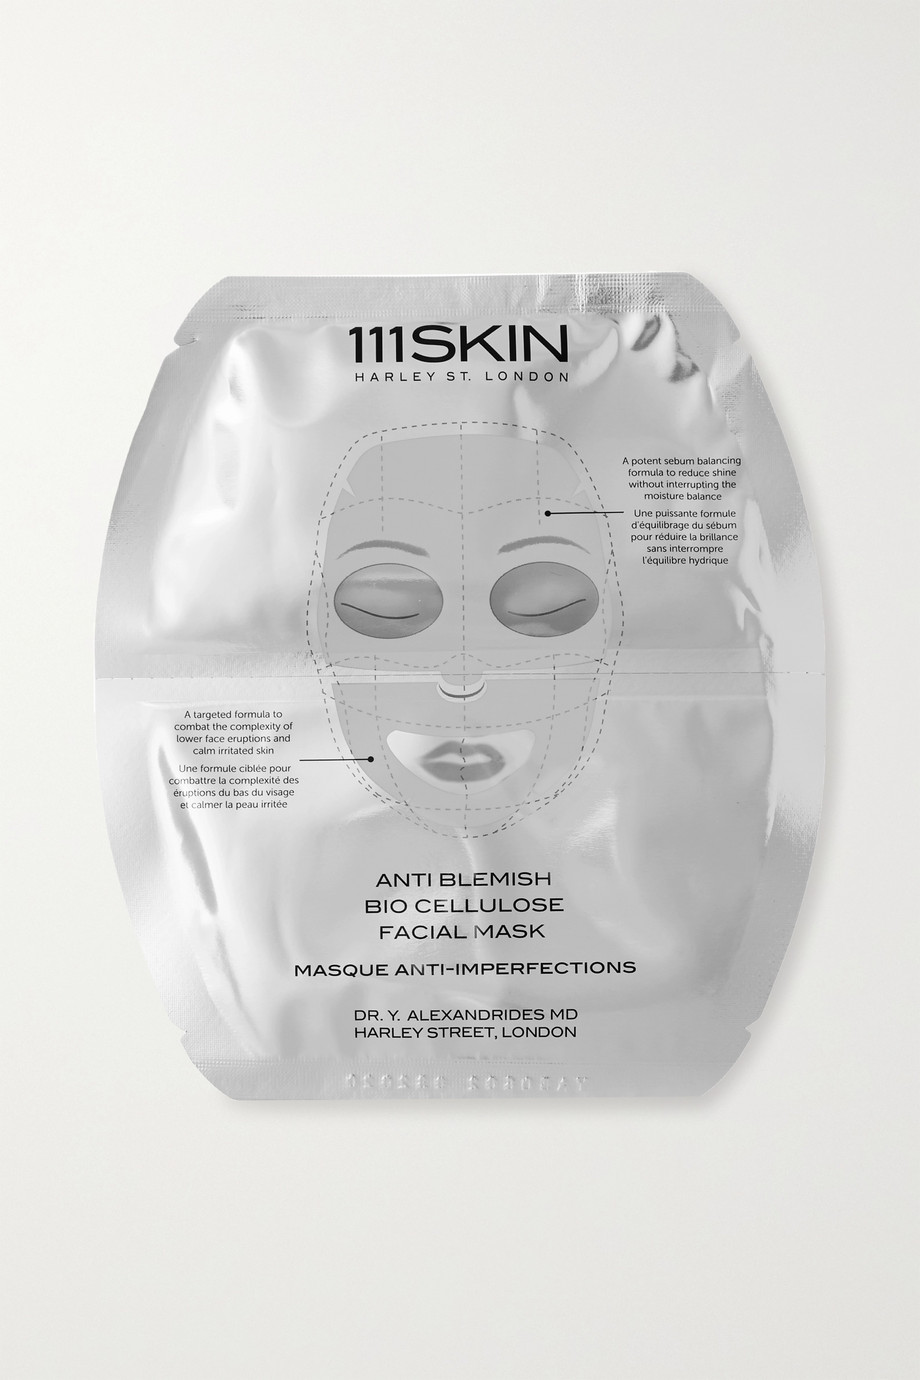 111SKIN Anti Blemish Bio Cellulose Facial Mask, 5 x 25ml